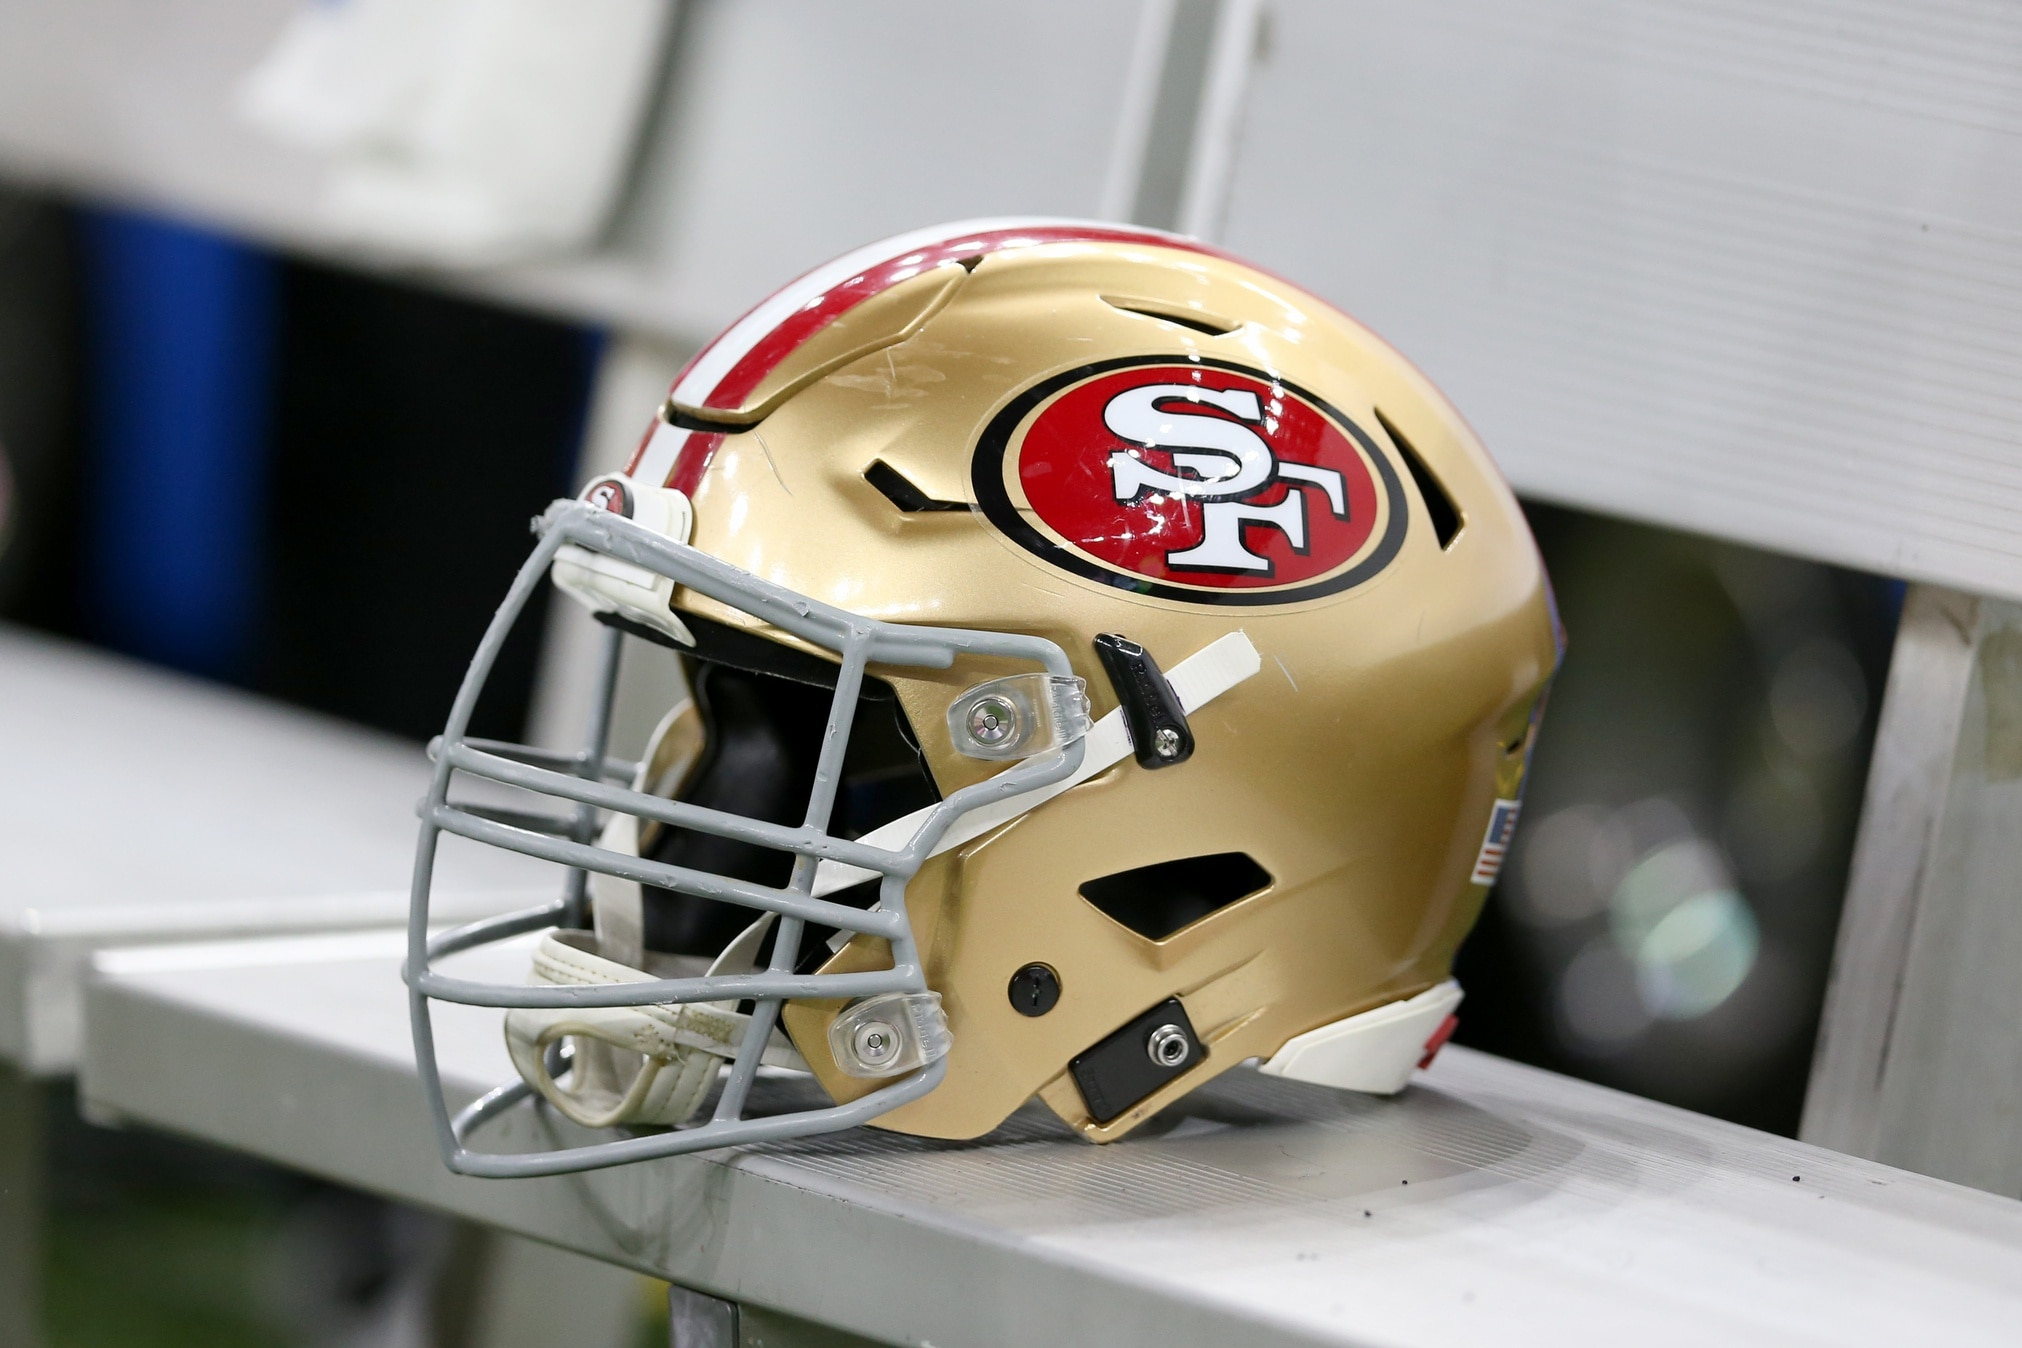 Report San Francisco 49ers Player Becomes Latest In Nfl To Test Positive For Covid 19